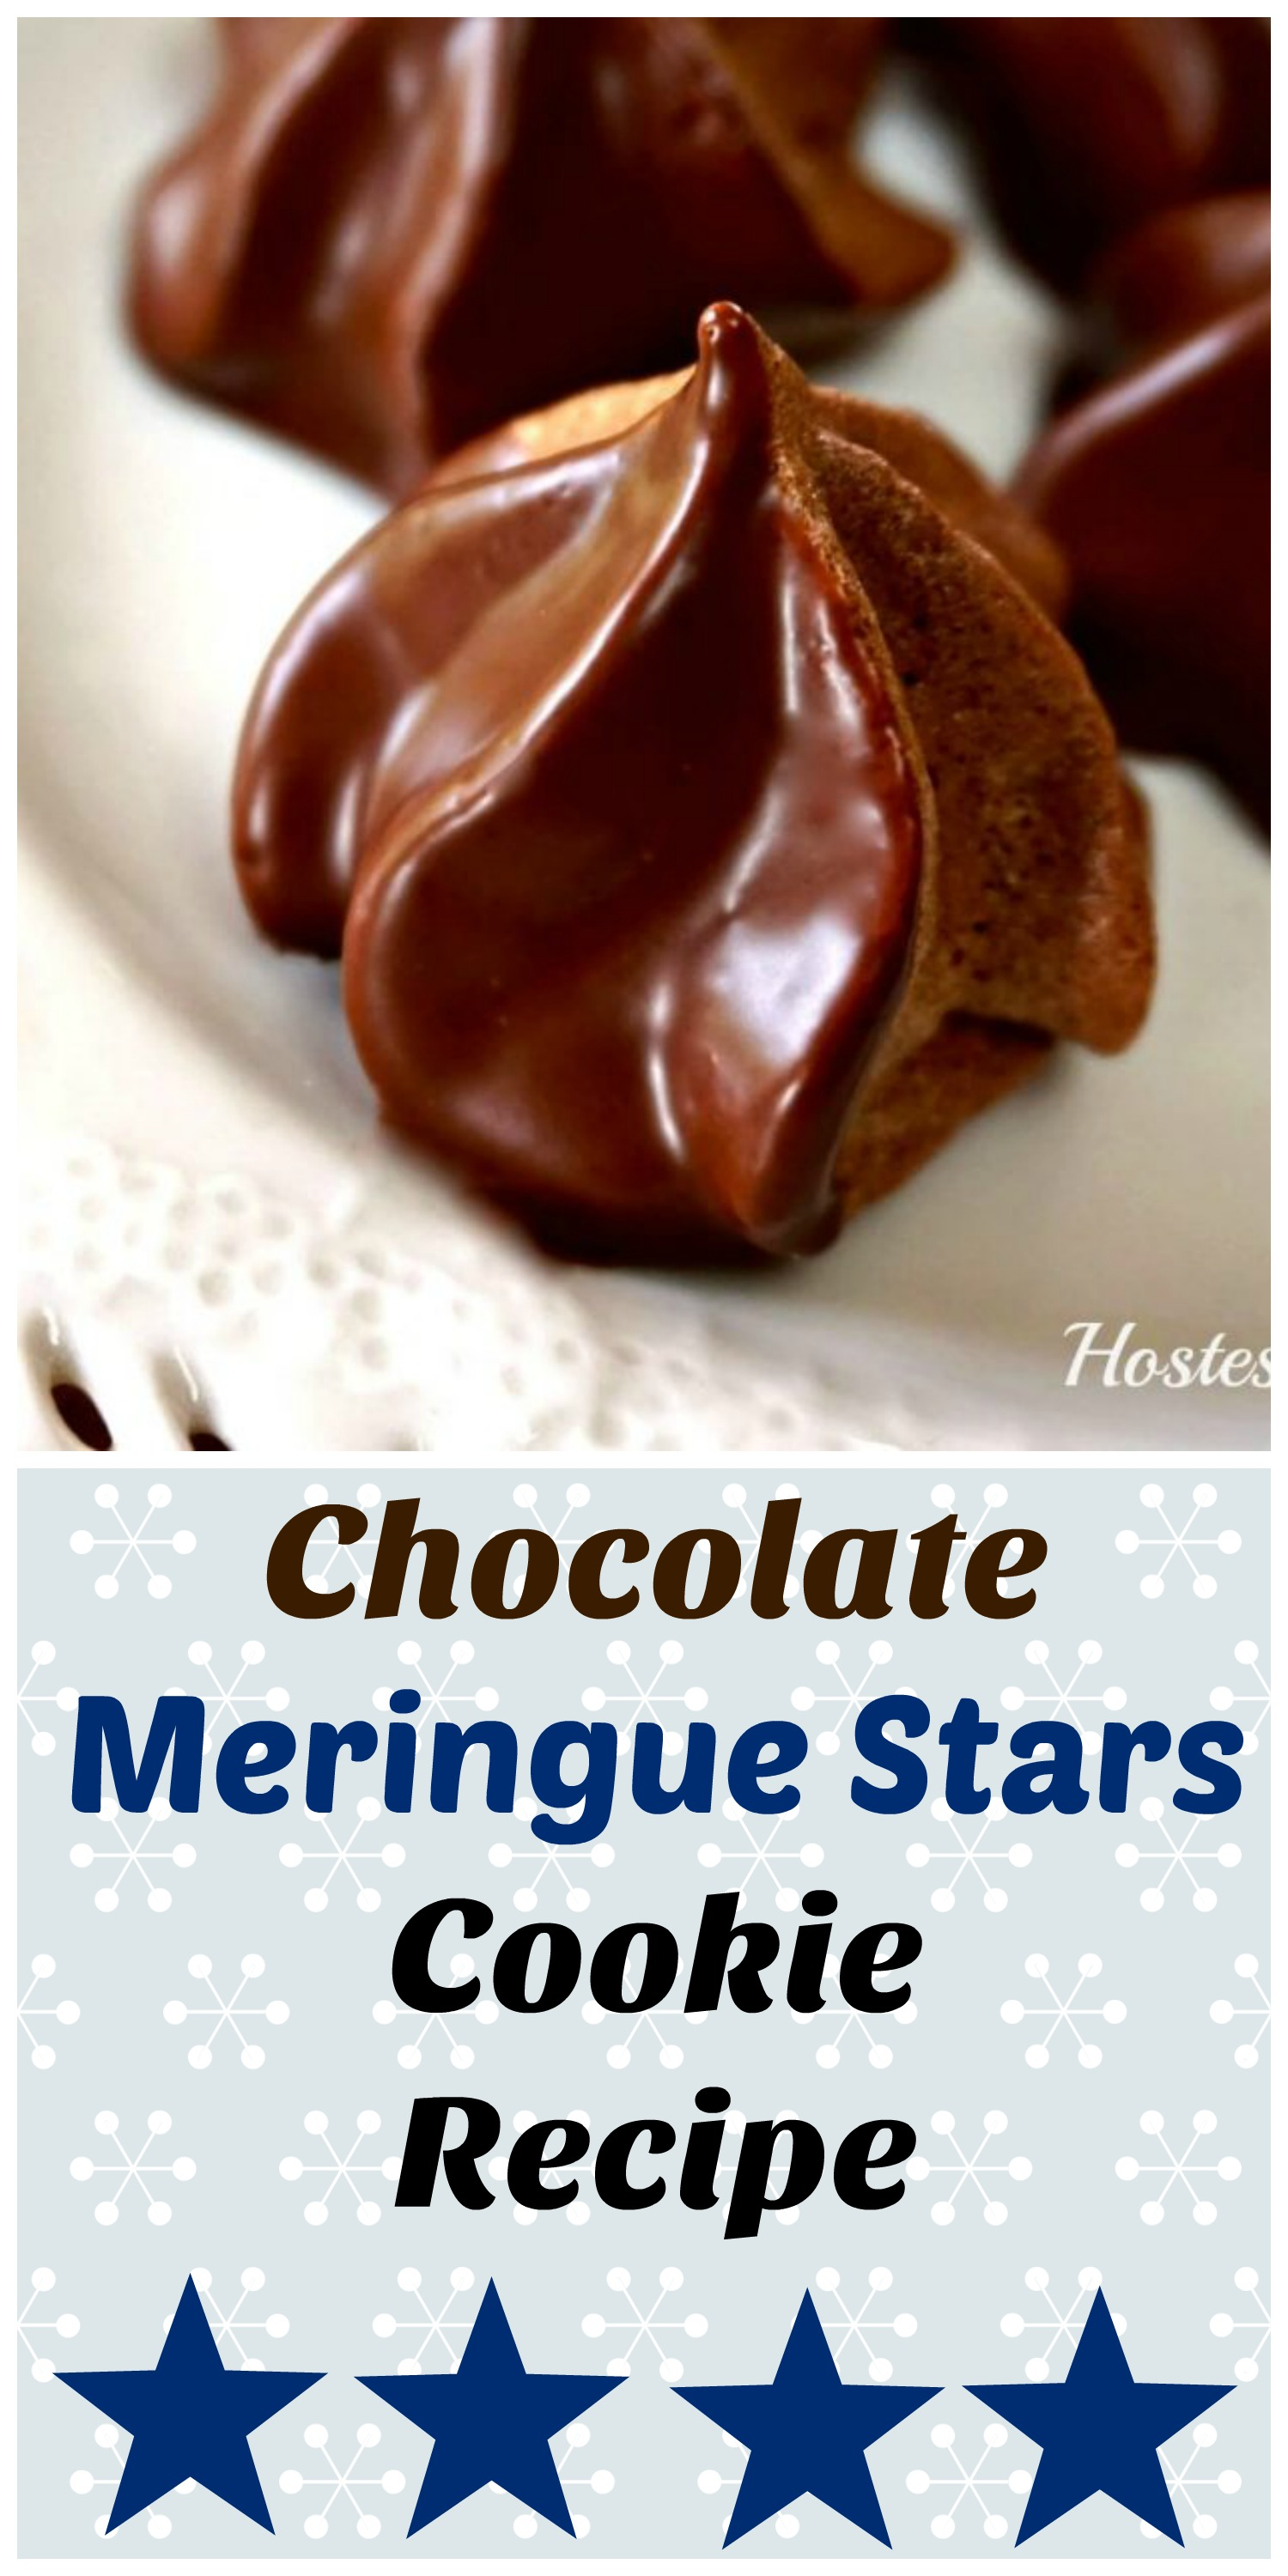 Chocolate Meringue Stars are a delicious cookie with a soft center and a nice little crunch on the outside.  They are pretty to look at and easy to make. #ChocolateDessert #recipe #cookies #homemade #baking | cookies | baking | chocolate Dessert